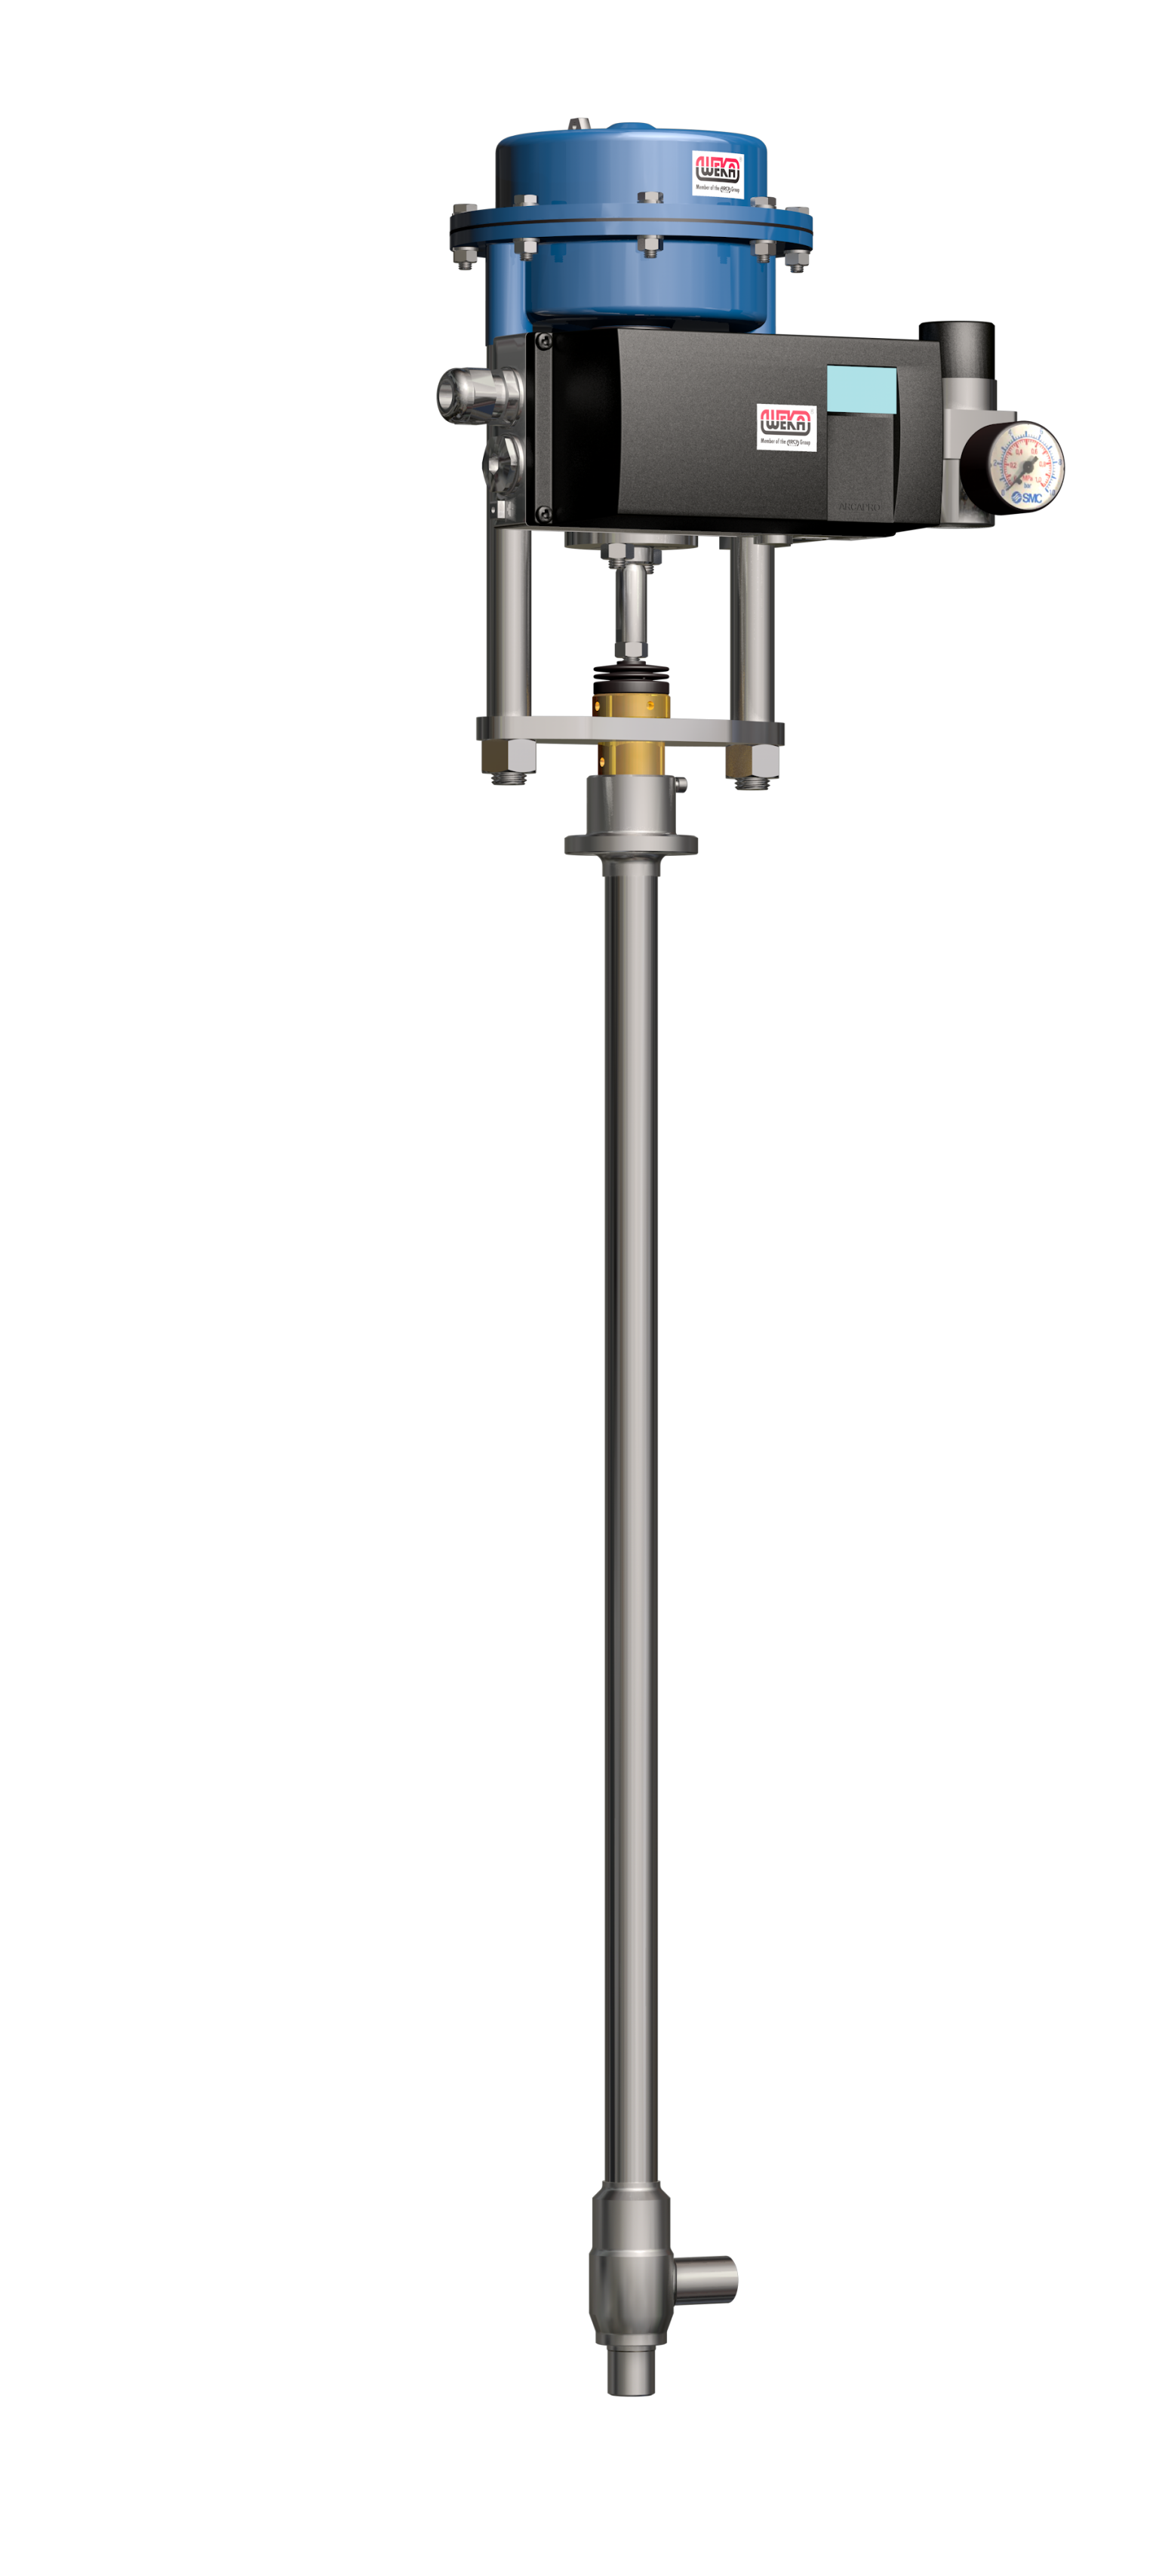 WEKA Cryogenic Control Valve with pneumatic actuator and ARCAPRO positioner